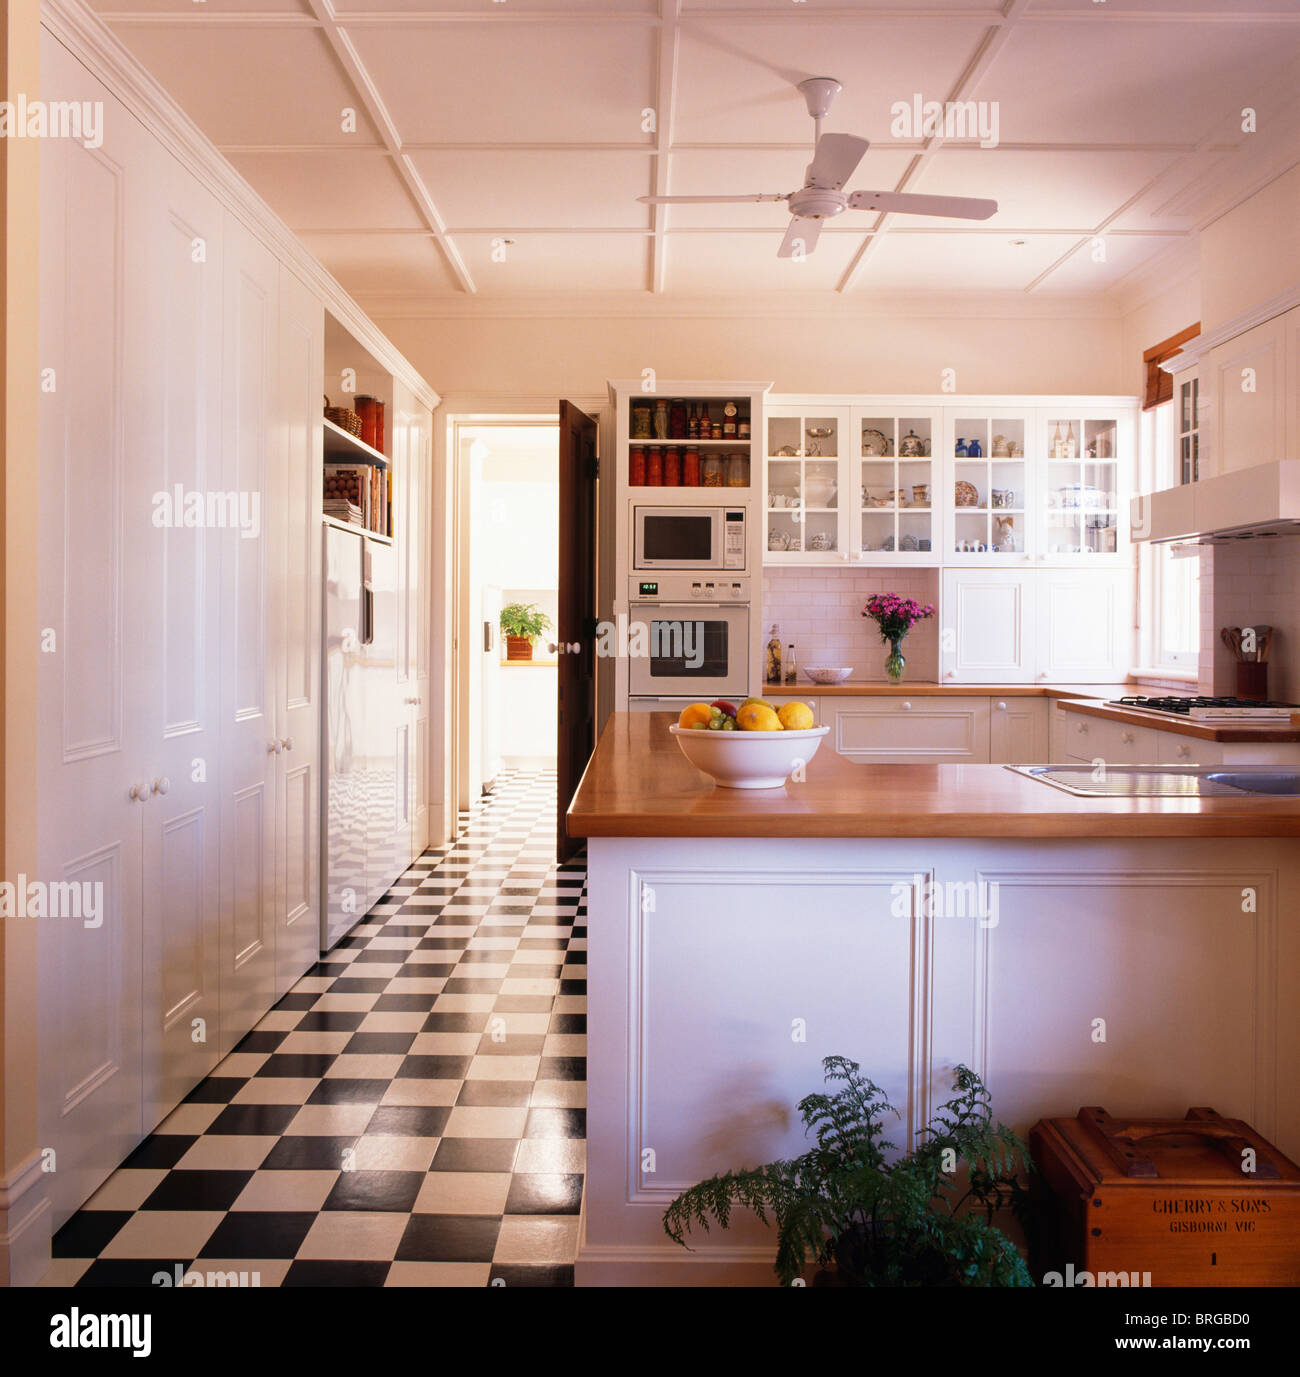 Remarkable Black White Checkerboard Vinyl Flooring In Large Modern Beutiful Home Inspiration Xortanetmahrainfo